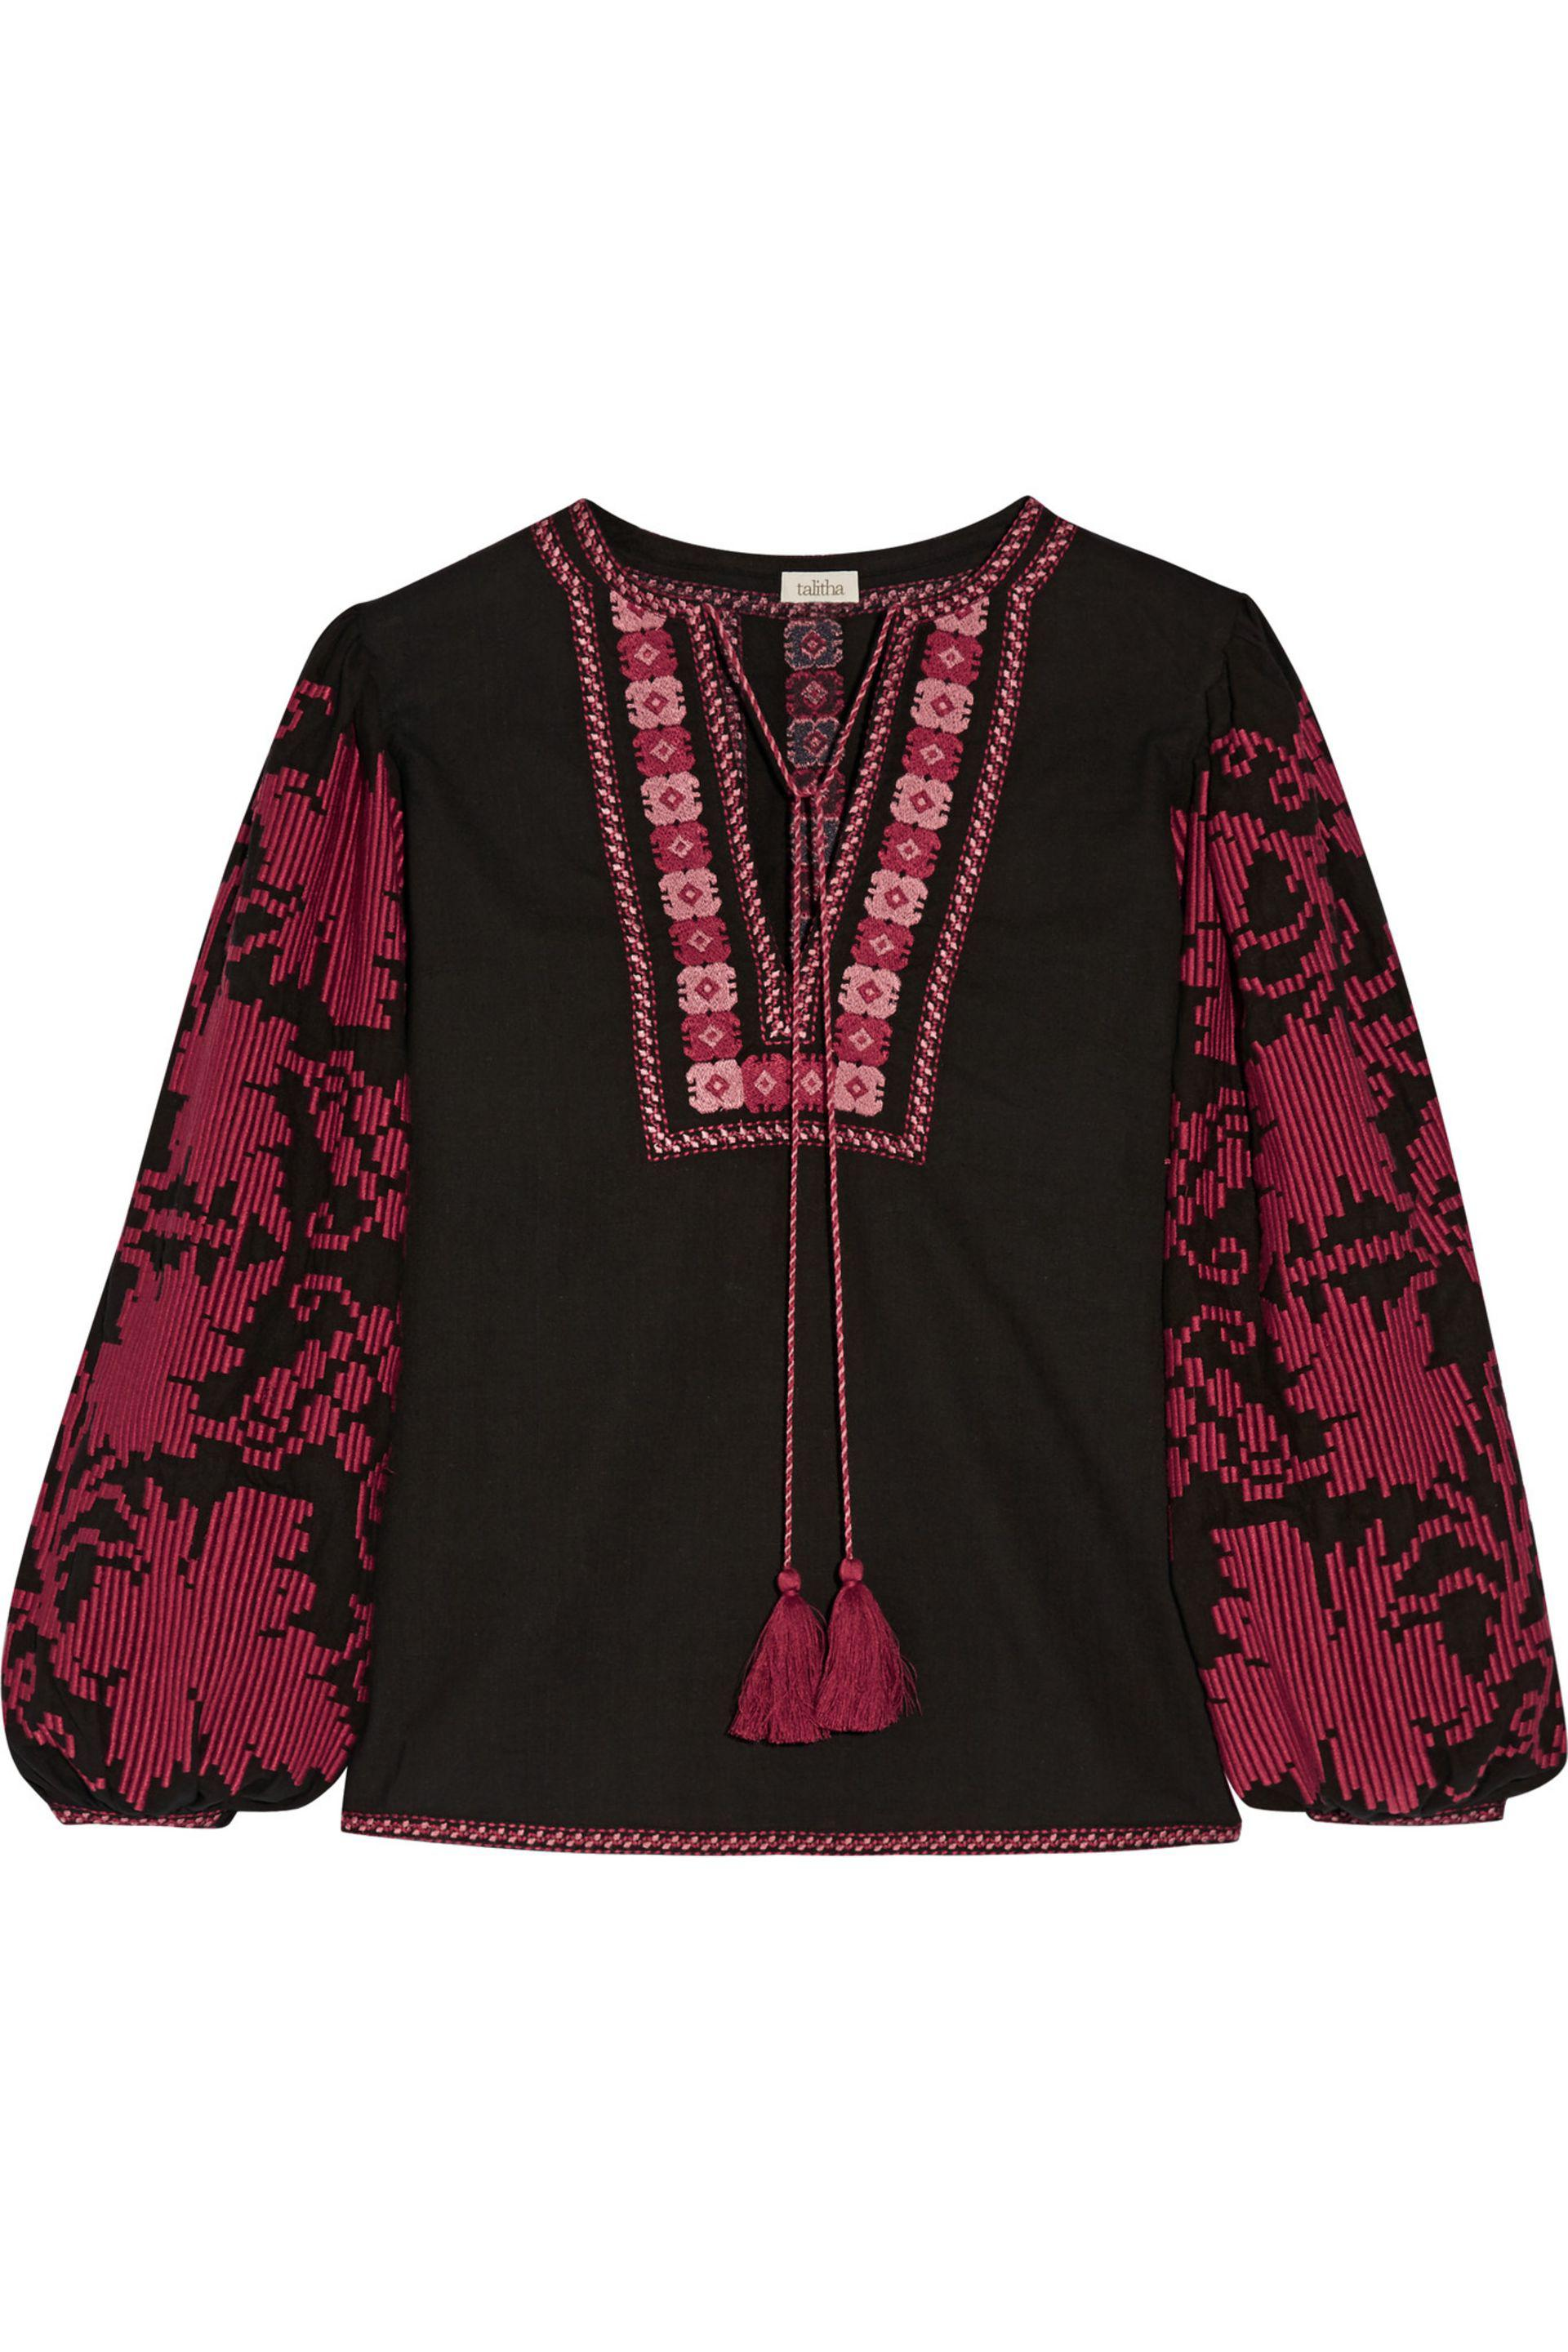 Outlet Discount Talitha Woman Embroidered Cotton-voile Tunic Burgundy Size M Talitha Affordable Cheap Online High Quality Cheap Online 43cNU